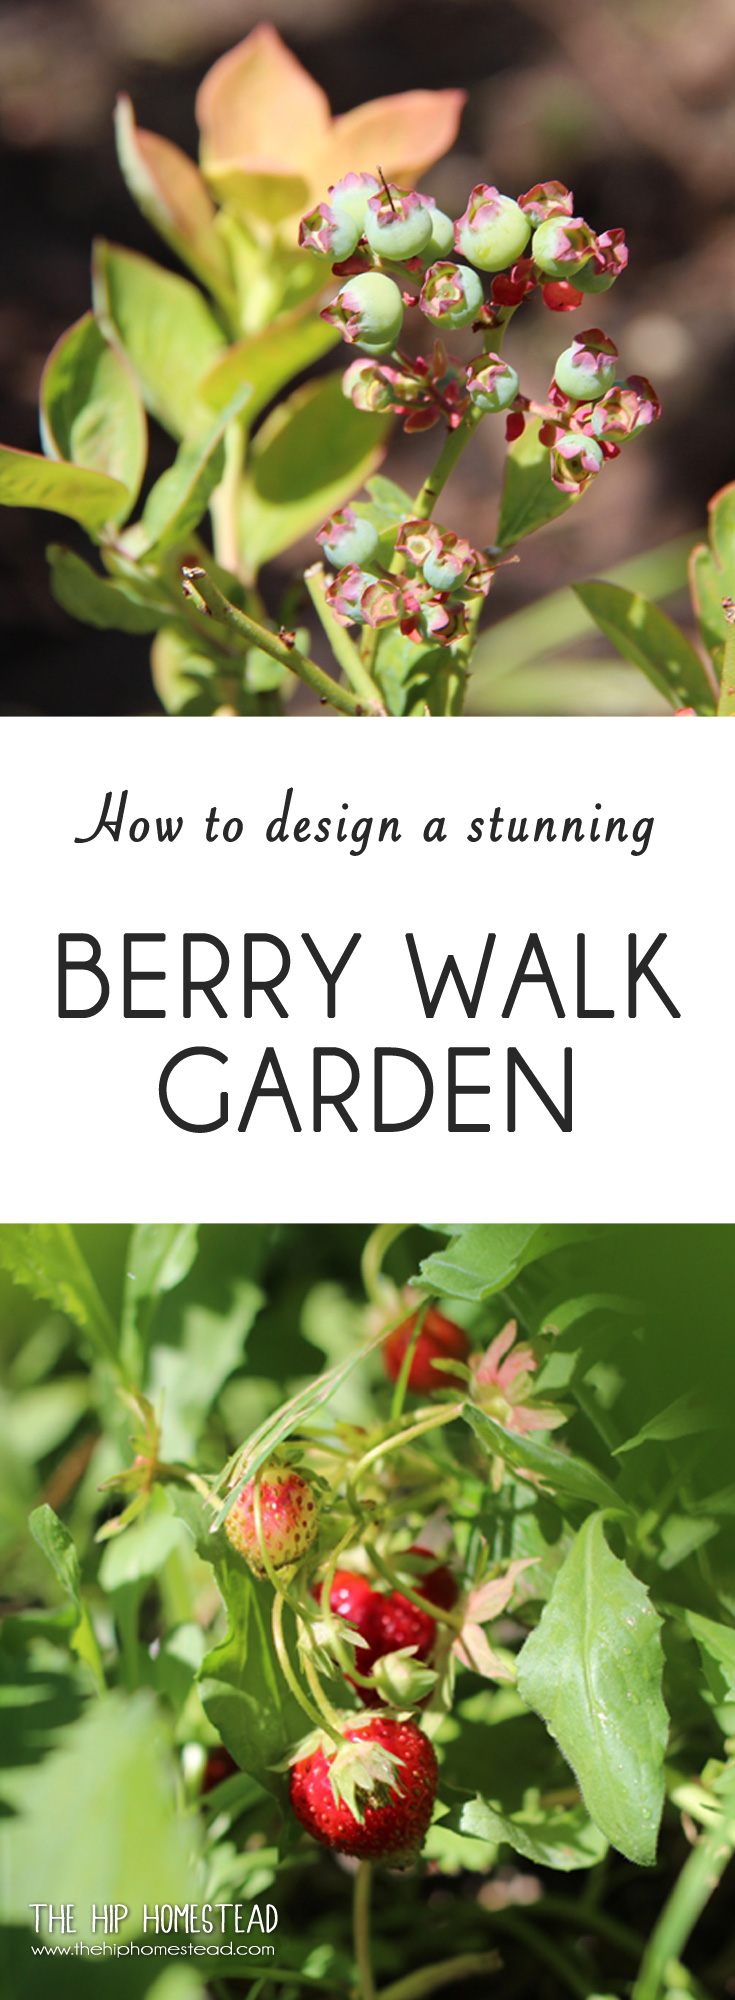 How to Design and Plant a Stunning Berry Walk Garden - The Hip Homestead